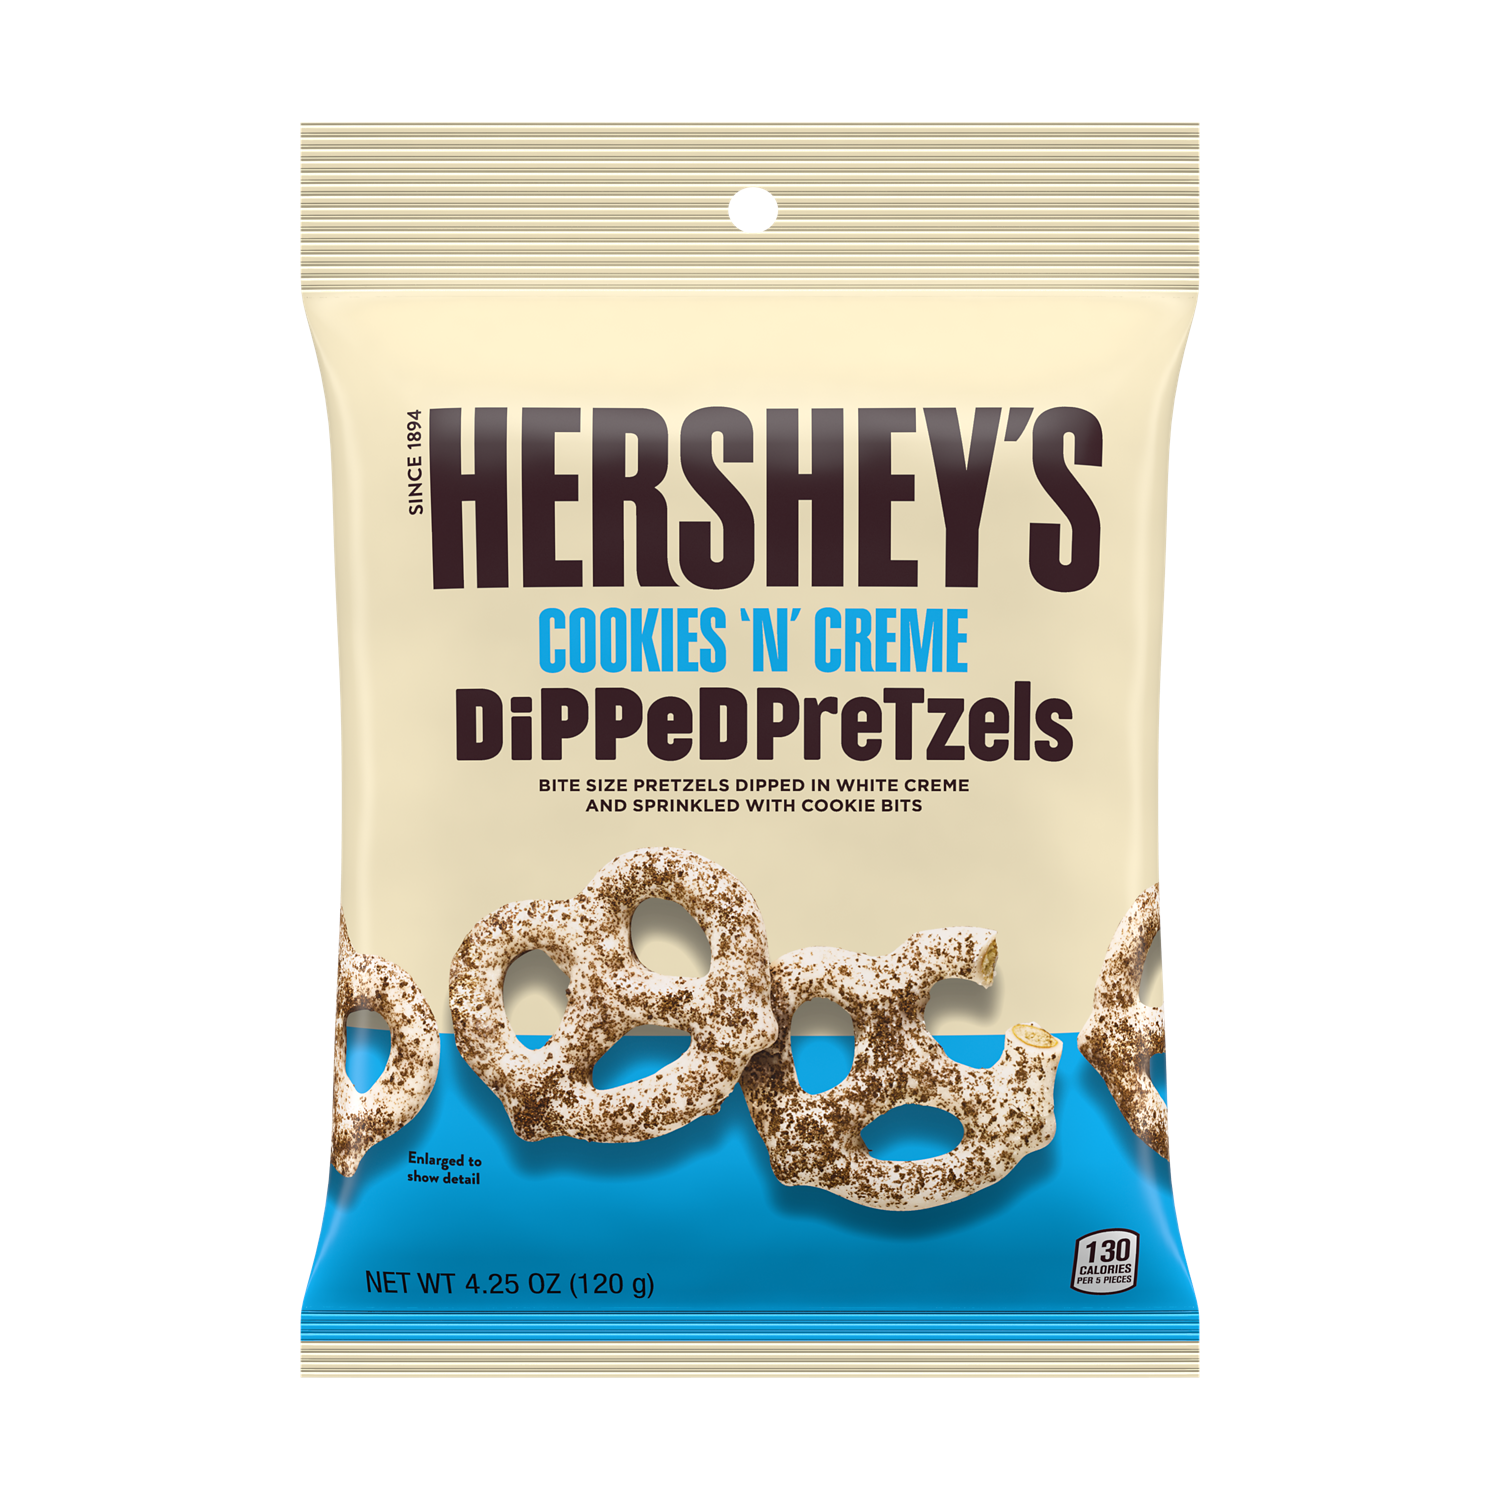 HERSHEY'S Dipped Pretzels COOKIES 'N' CREME Snack, 4.25 oz bag - Front of Package